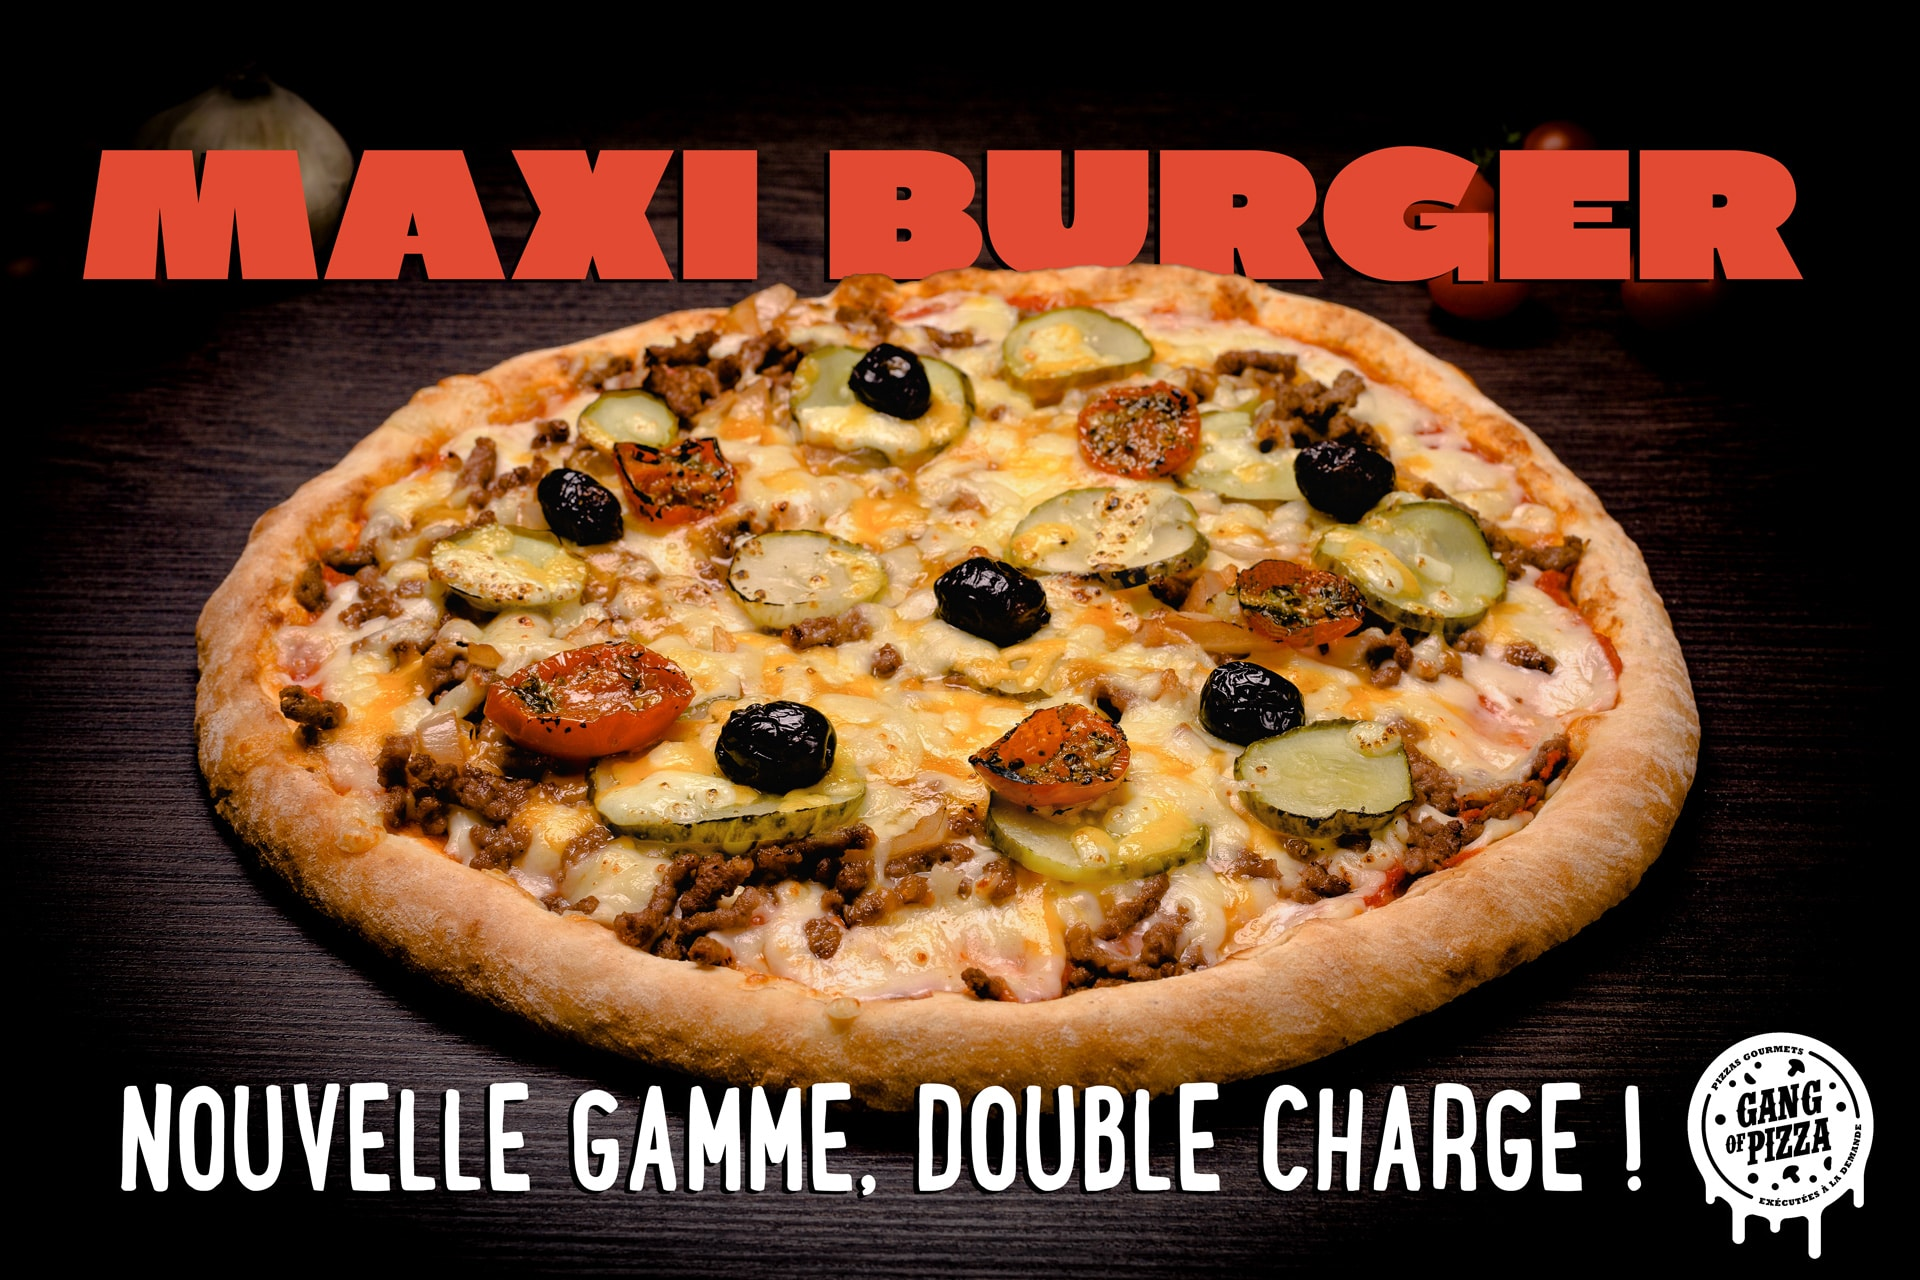 LA MAXI BURGER DEBARQUE CHEZ GANG OF PIZZA